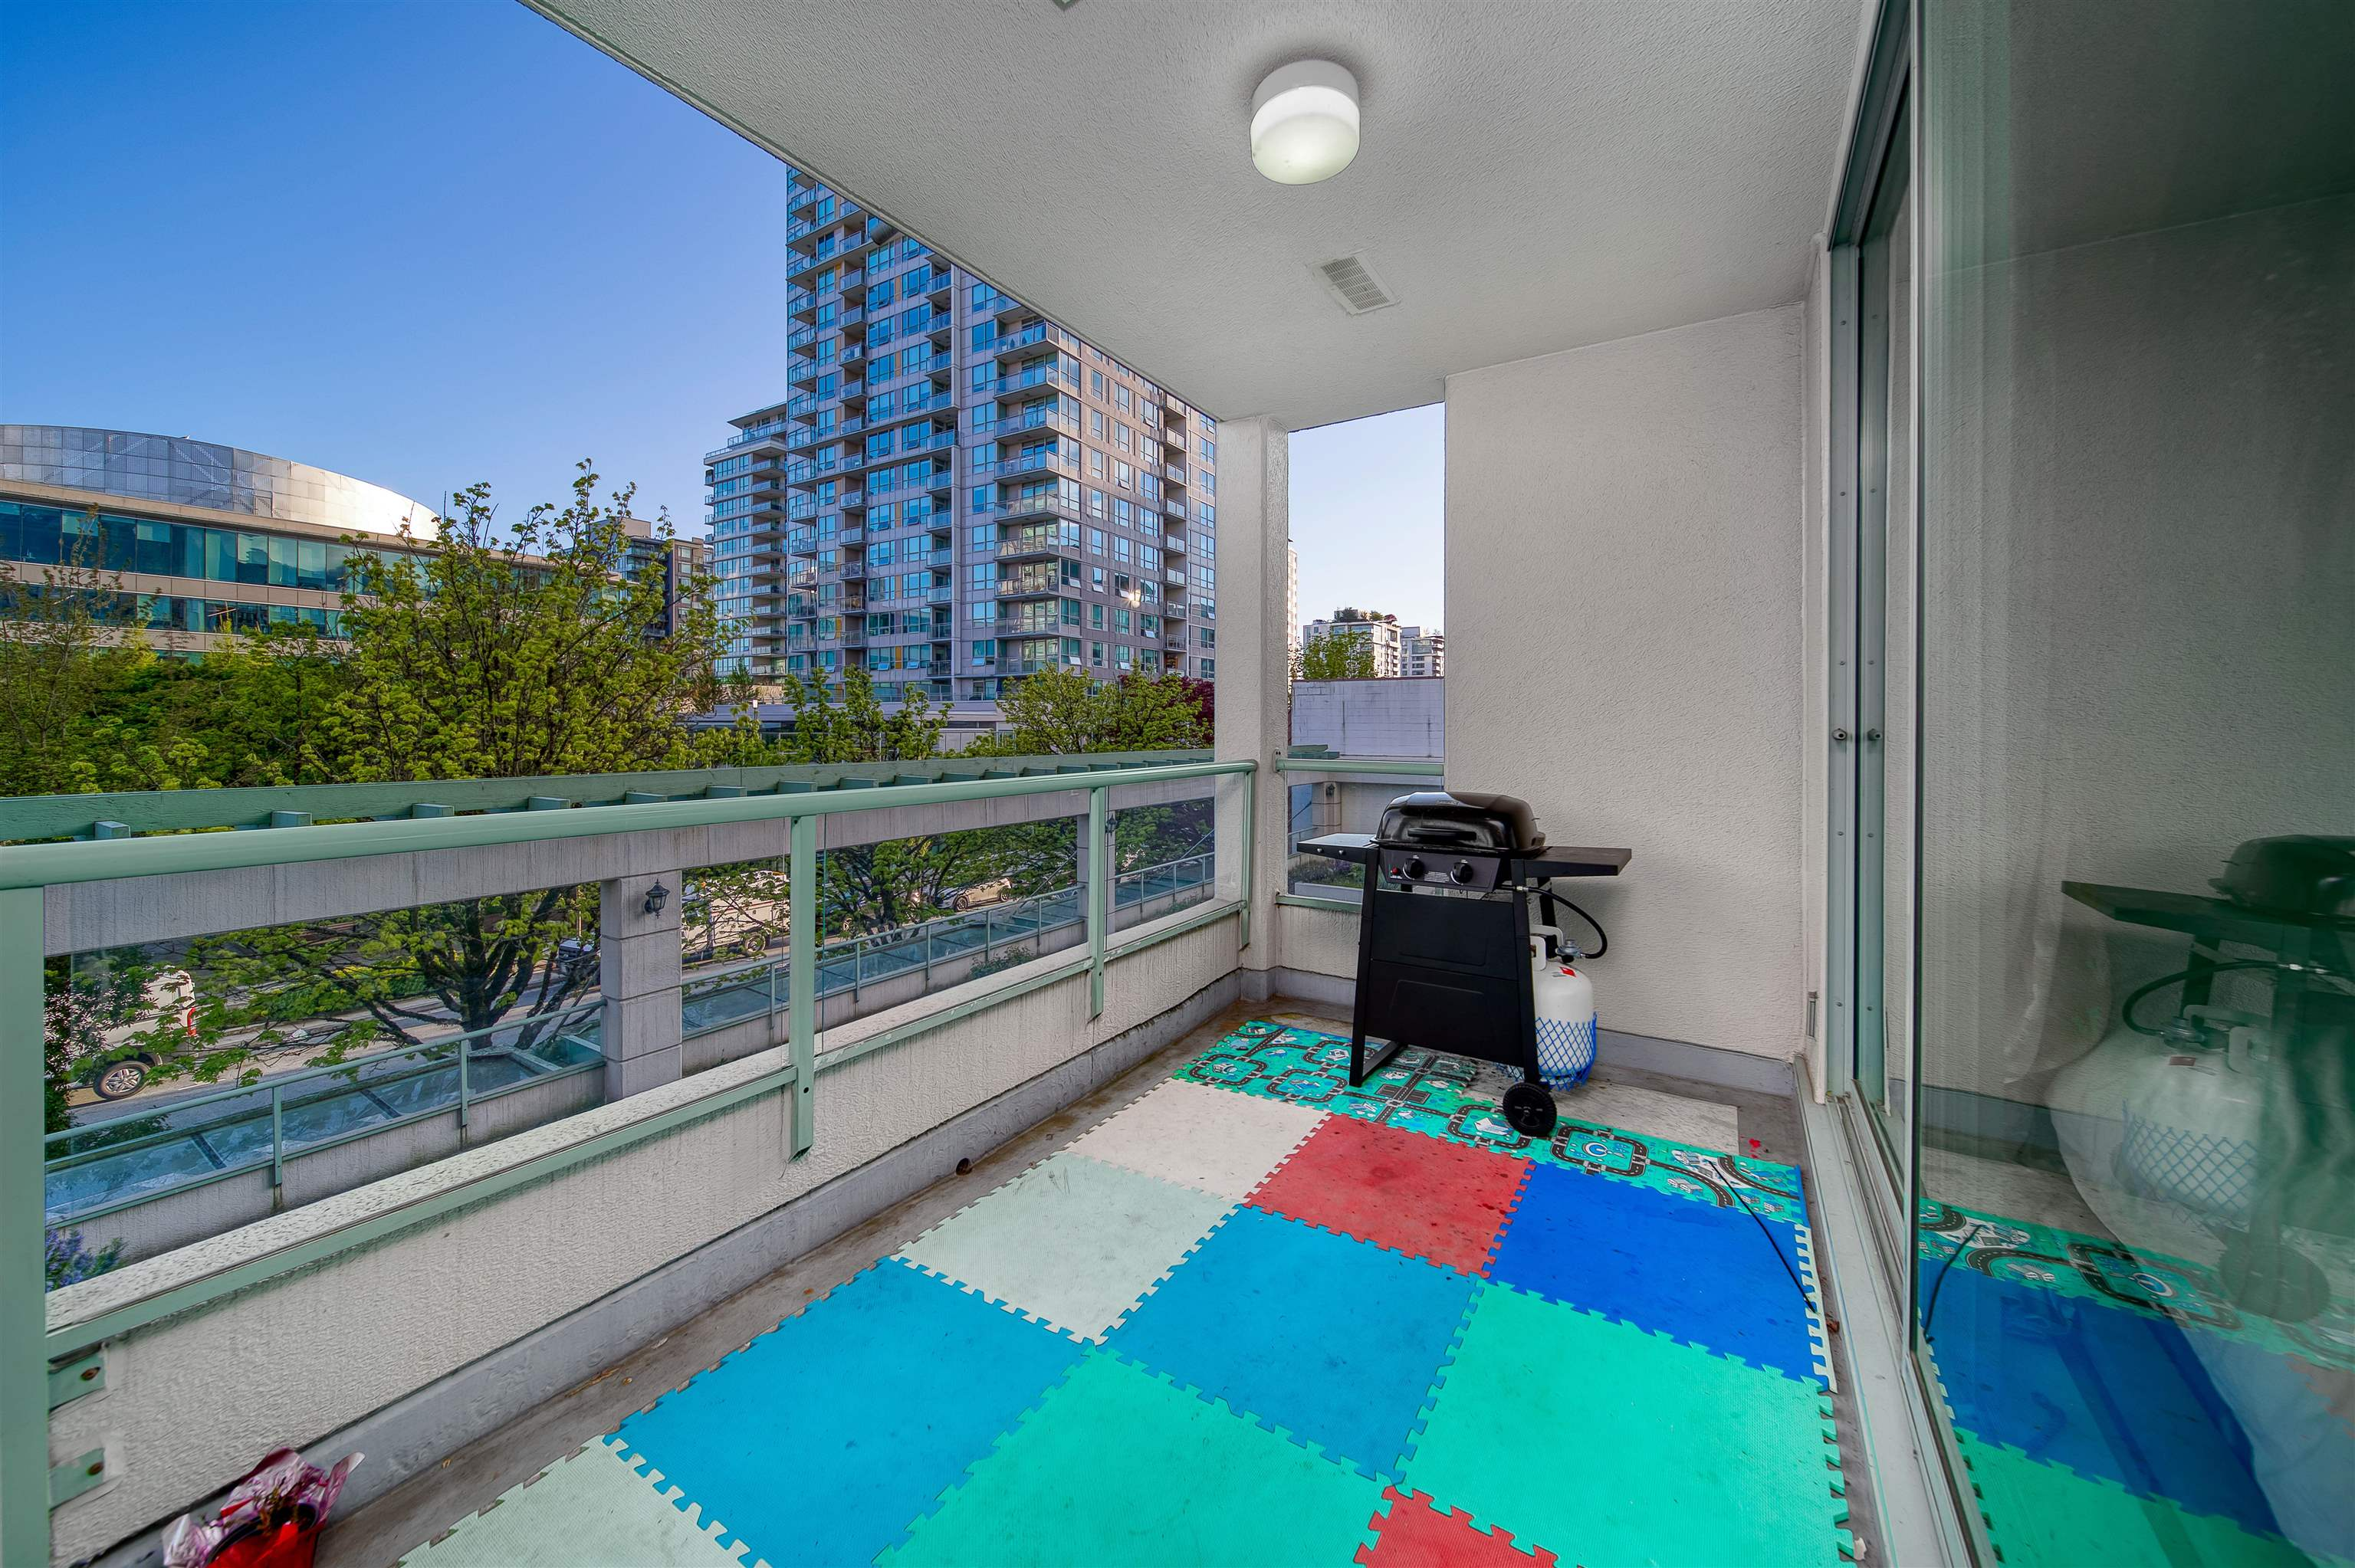 303 140 E 14TH STREET - Central Lonsdale Apartment/Condo for sale, 1 Bedroom (R2618094) - #9